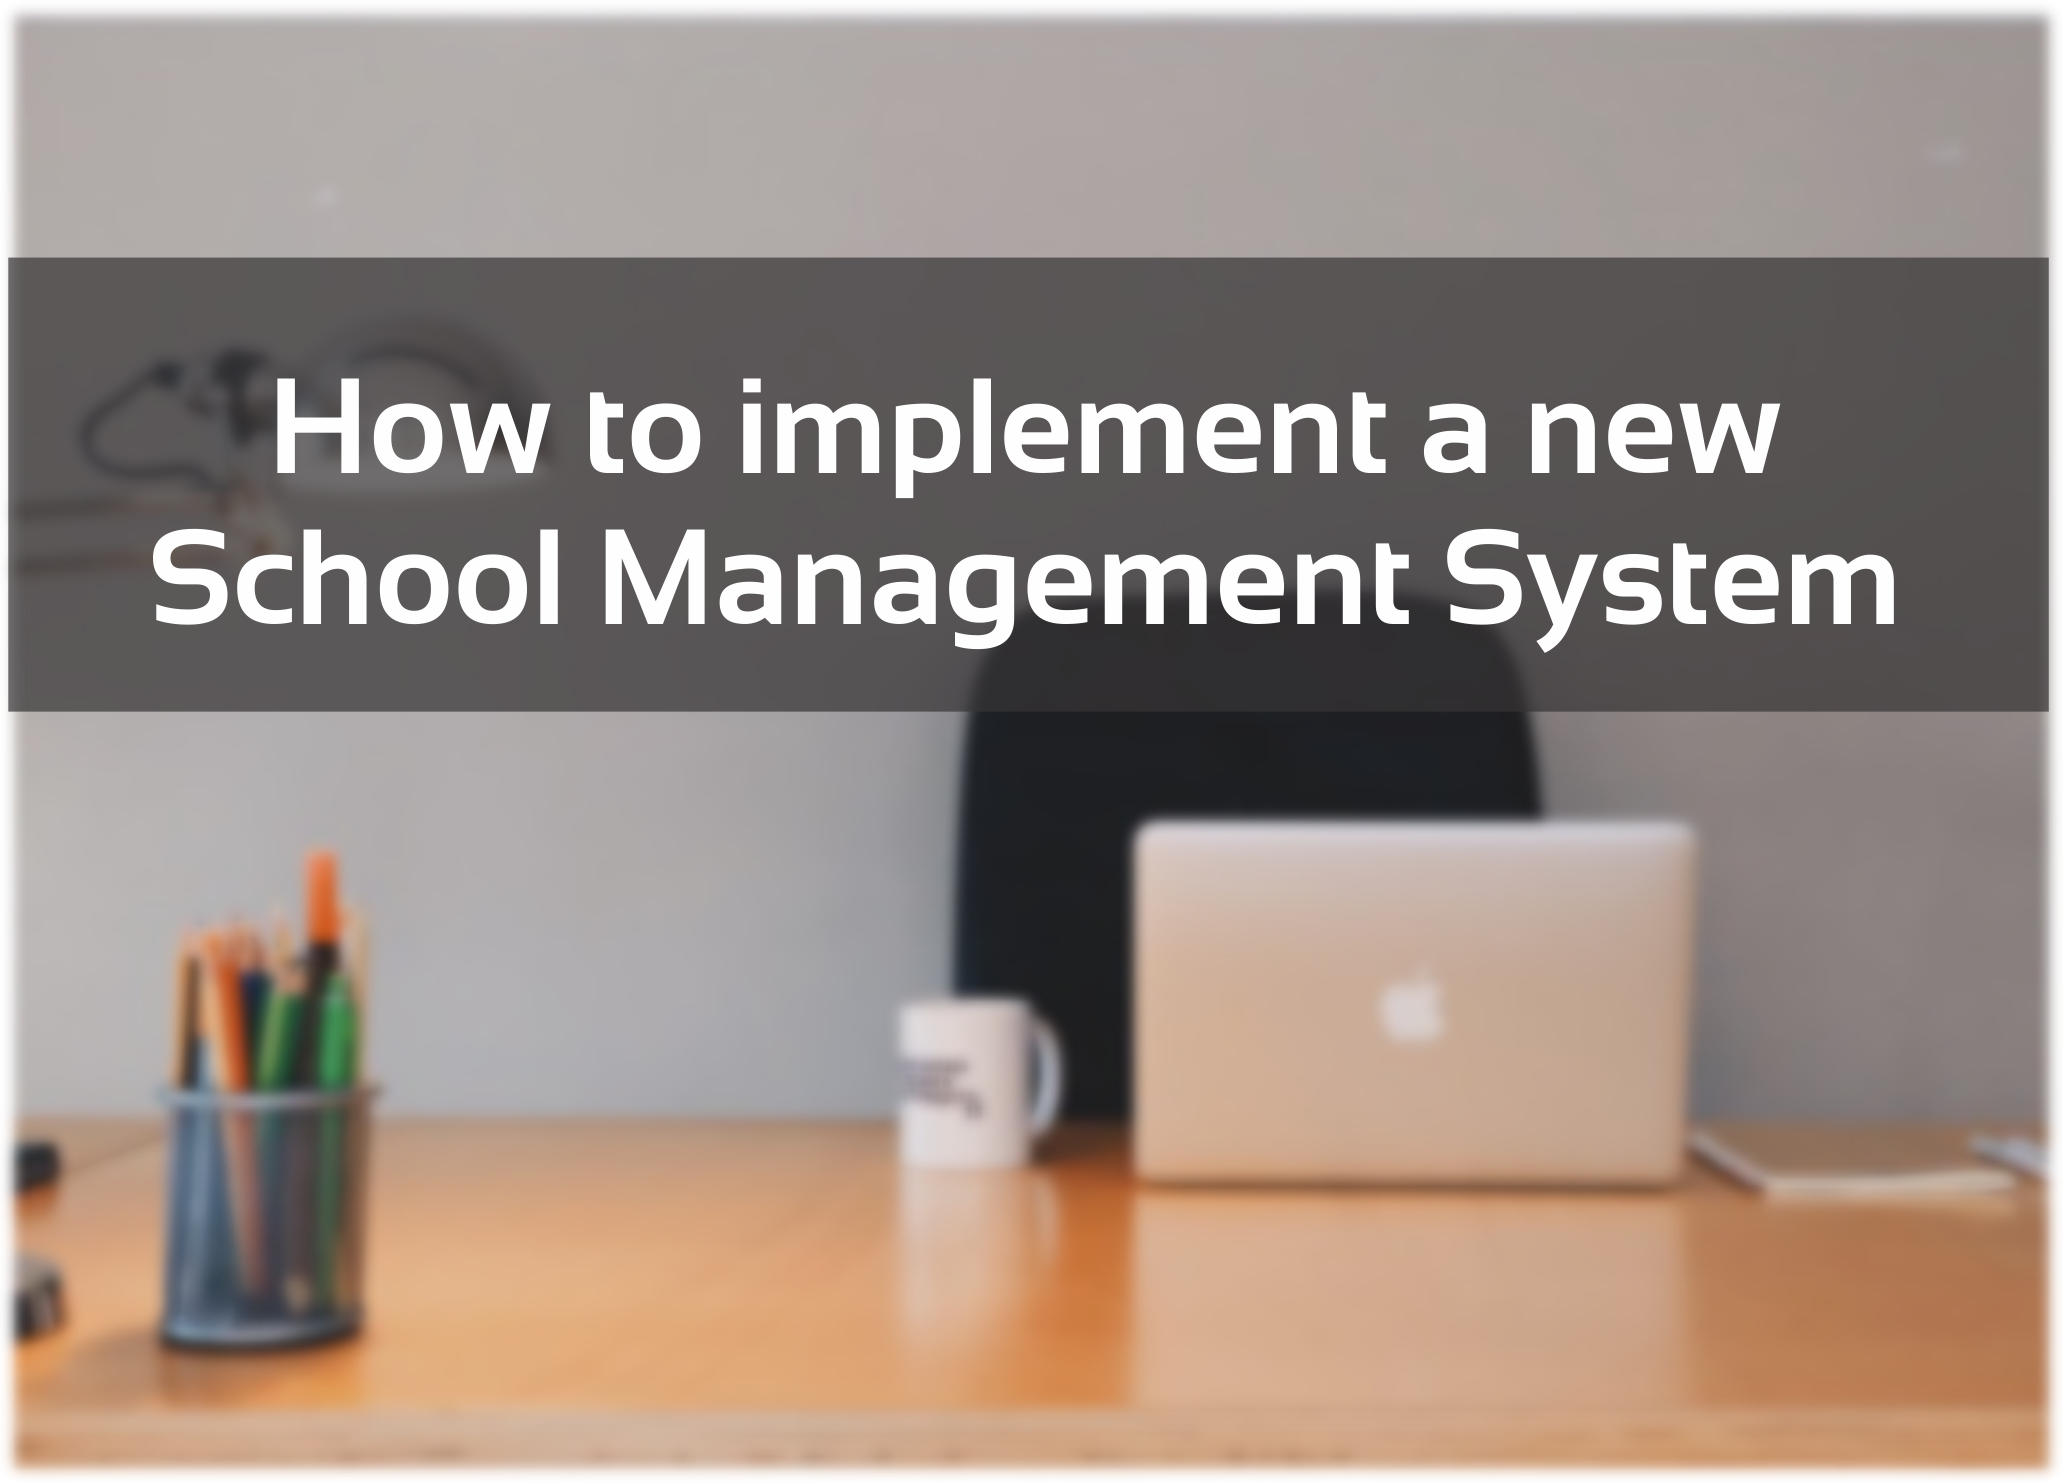 Implementing a new School Management System